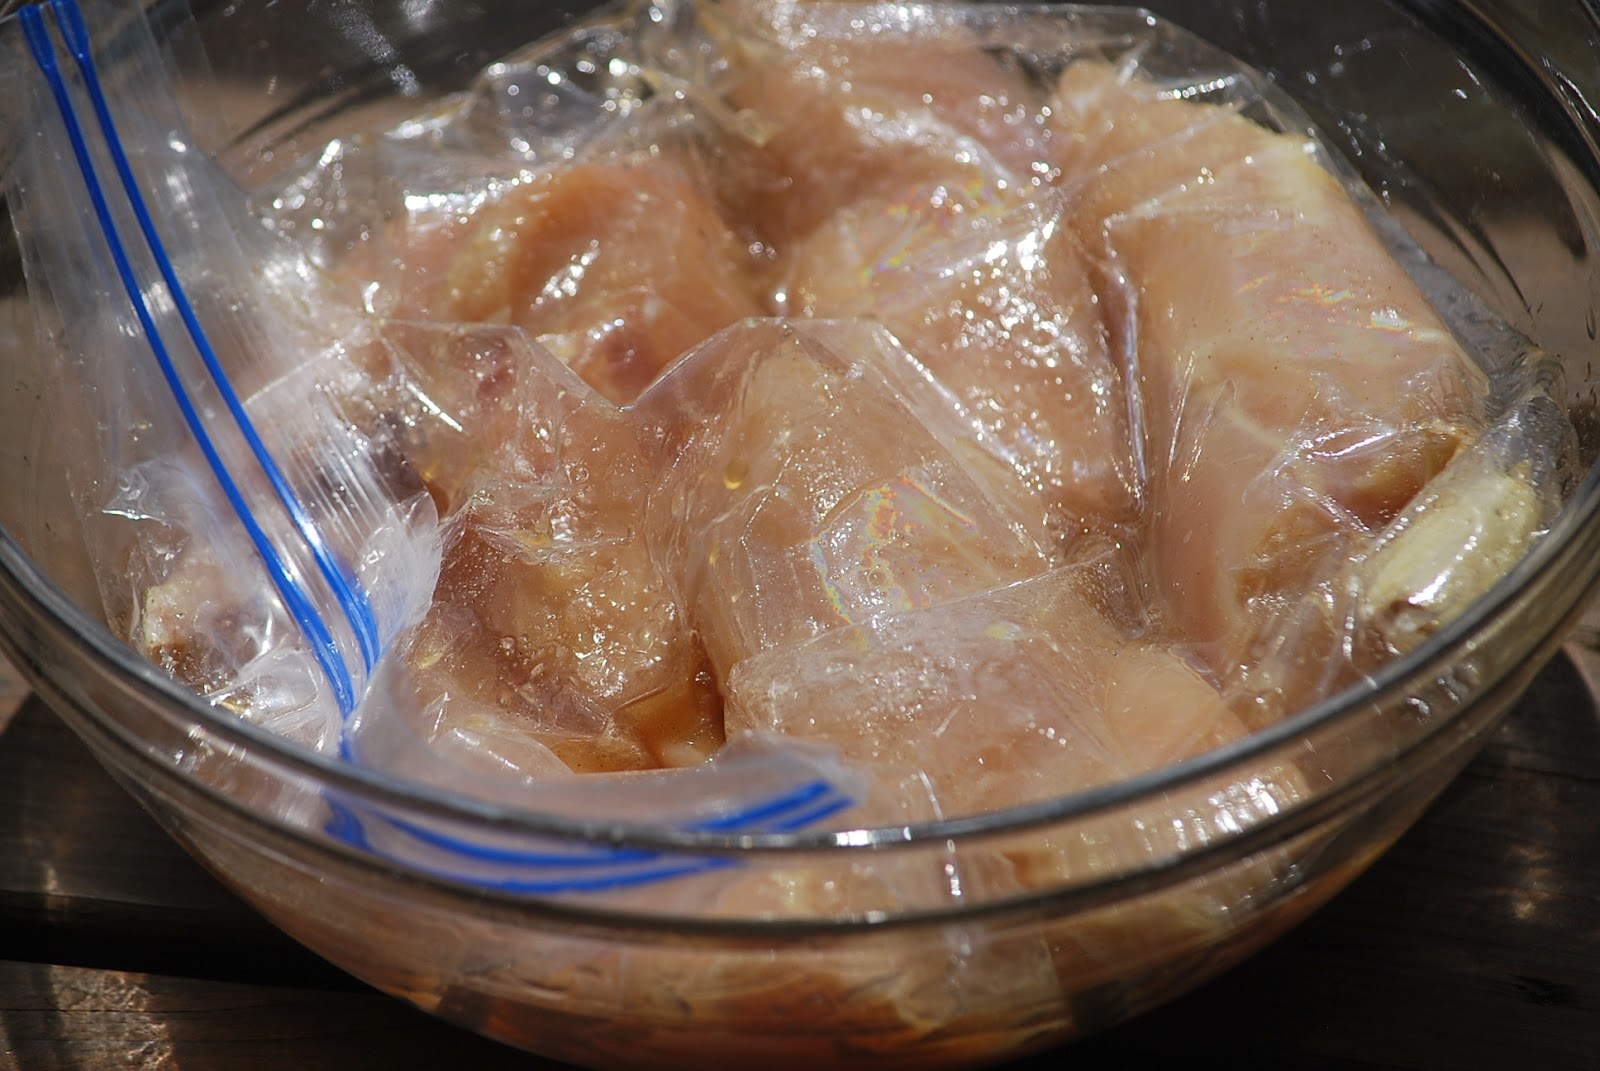 ... garlic, ½ t. salt and pepper in Ziploc bag. Add chicken to marinate